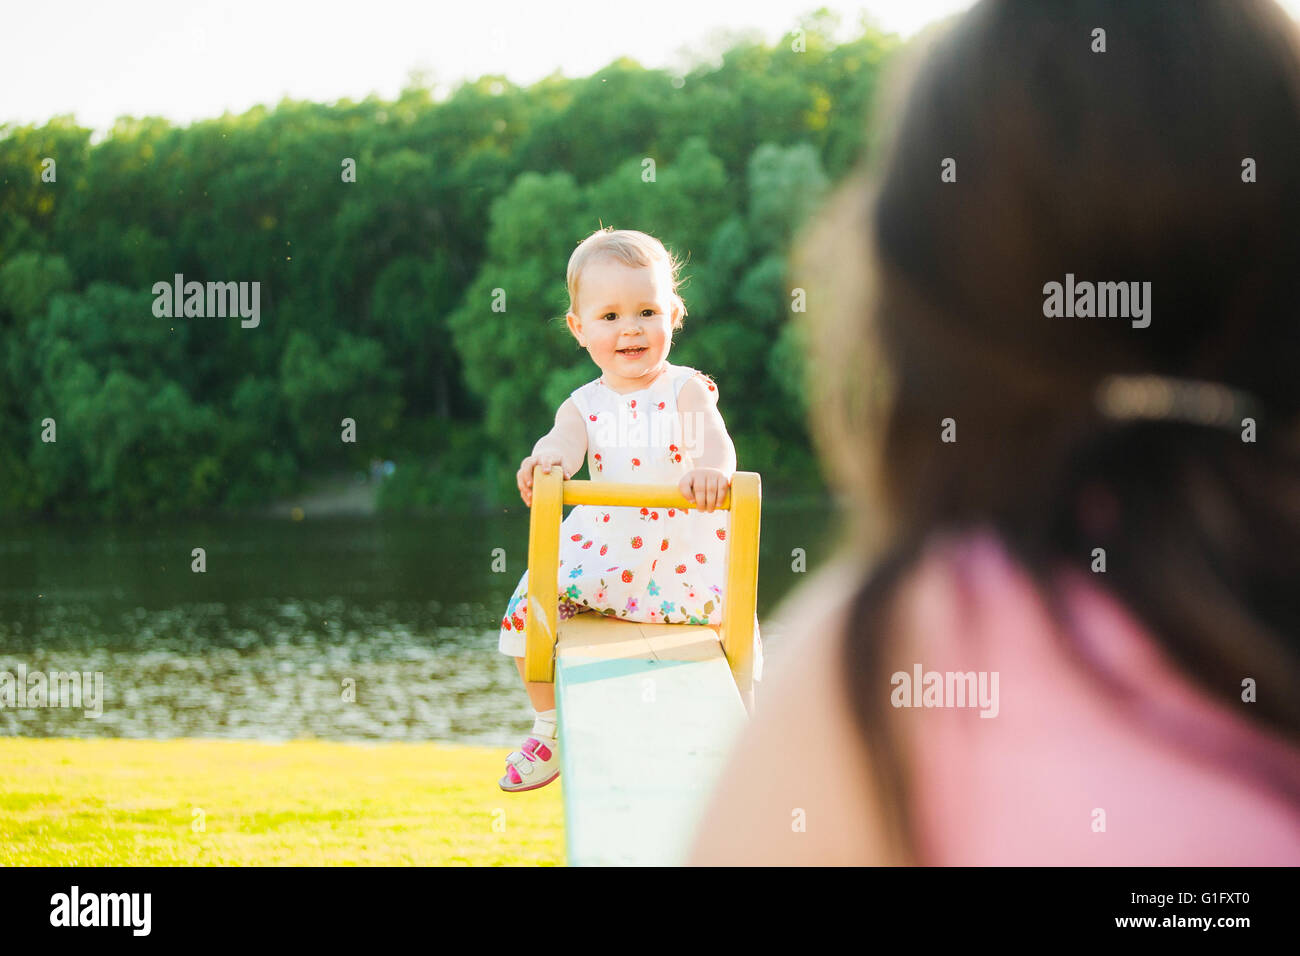 Little girl enjoying riding swing with mommy at beautiful nature background. Baby happily playing with parents outside - Stock Image